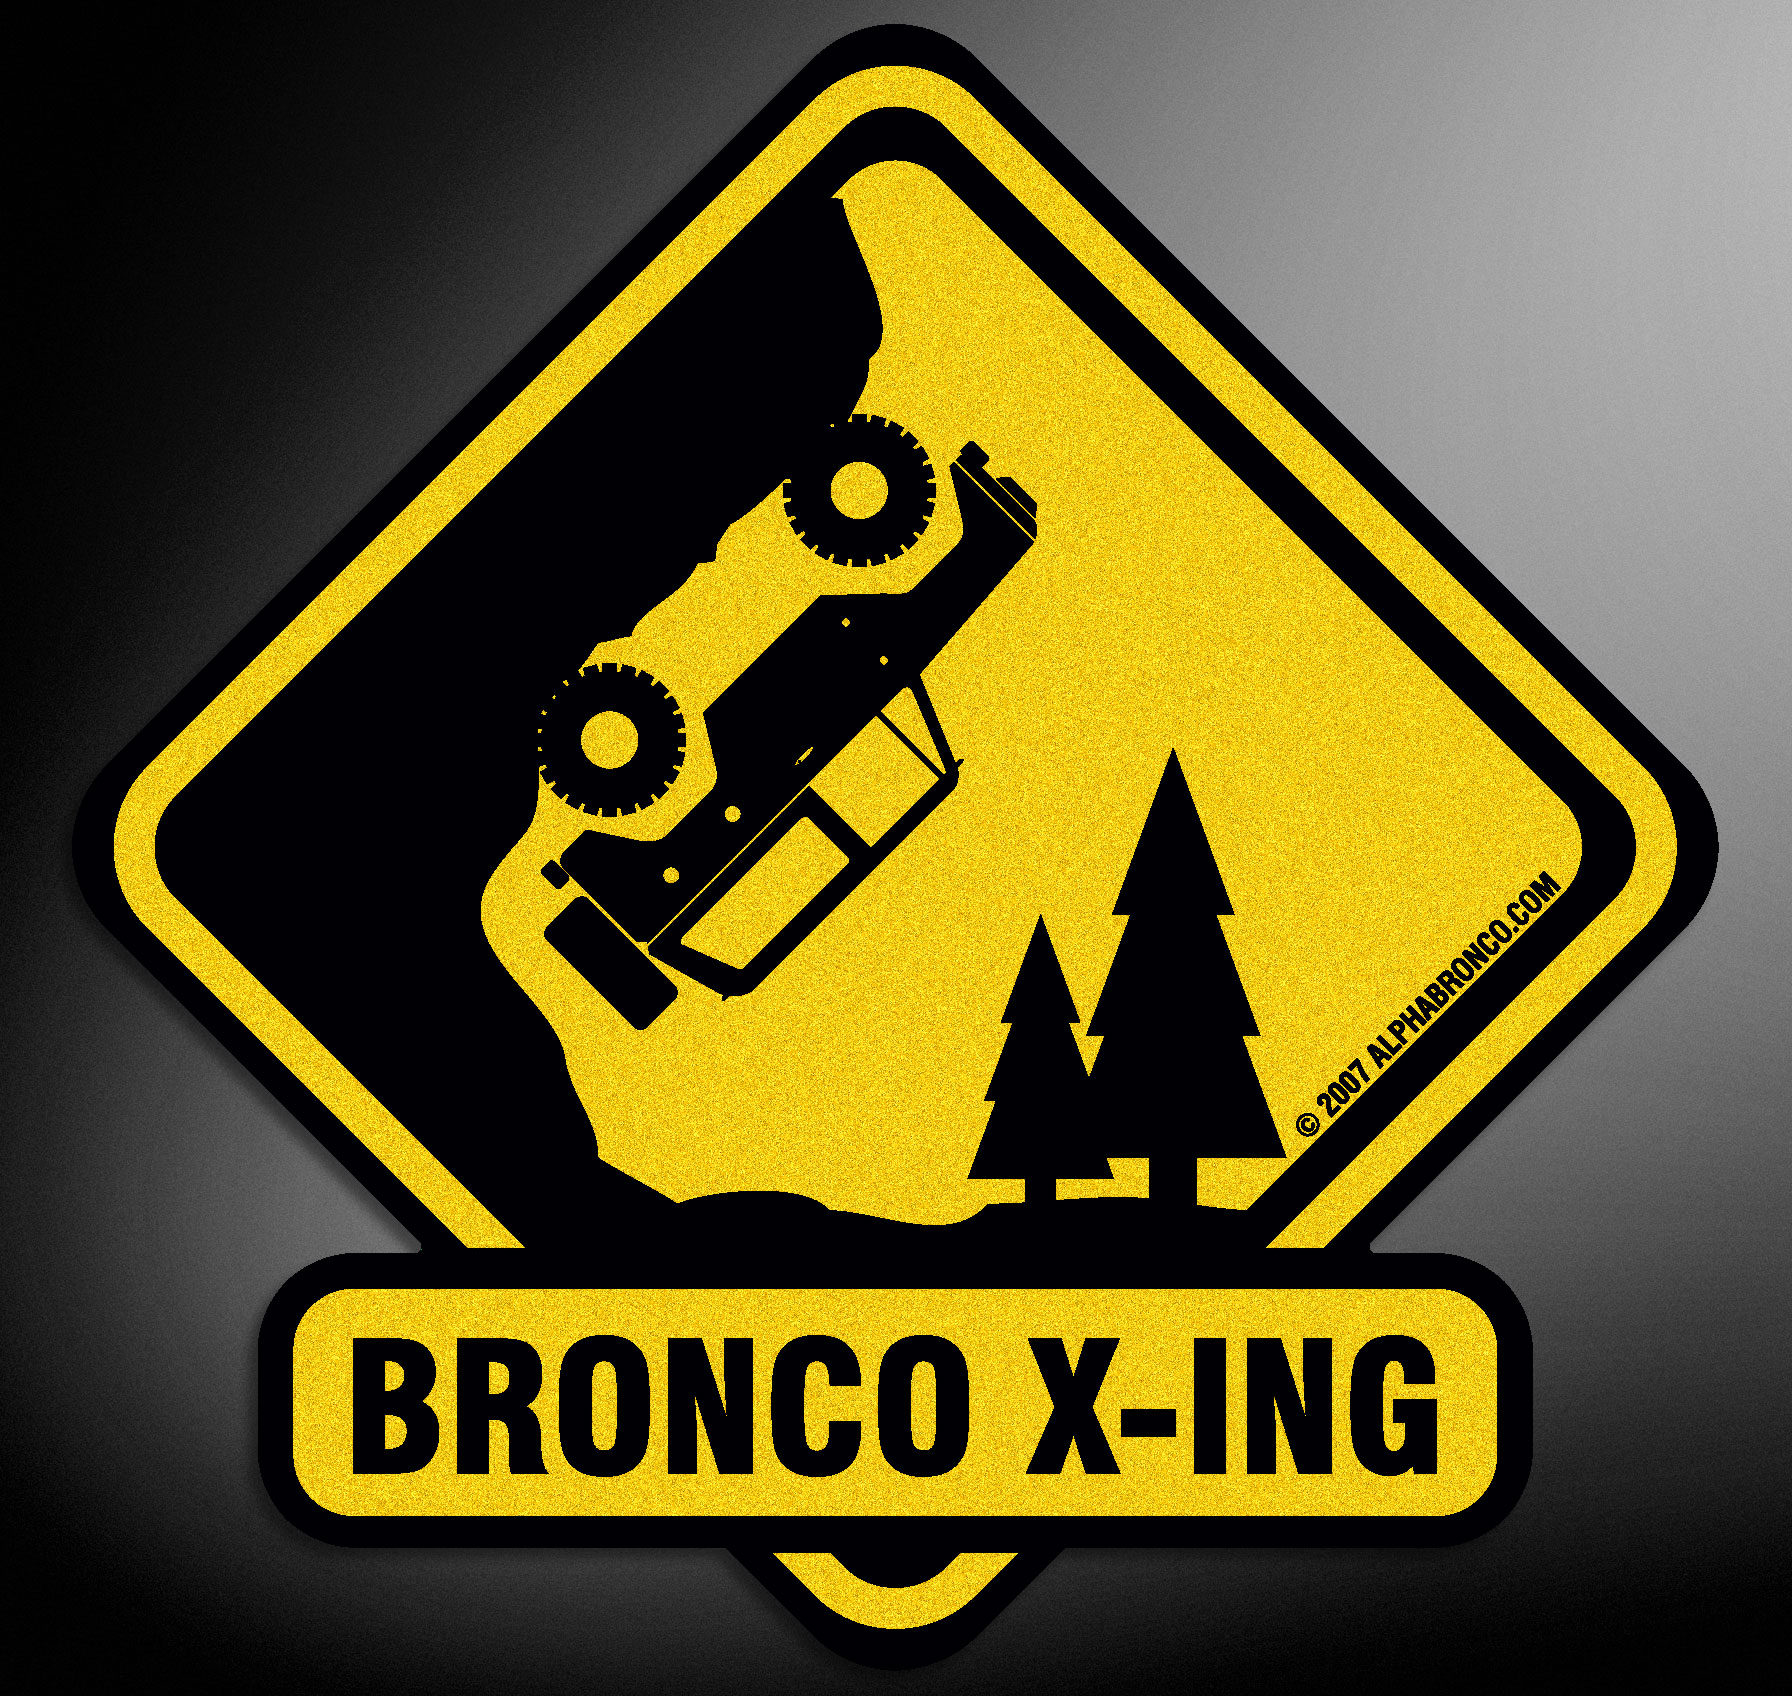 Alpha Bronco X-ING decal